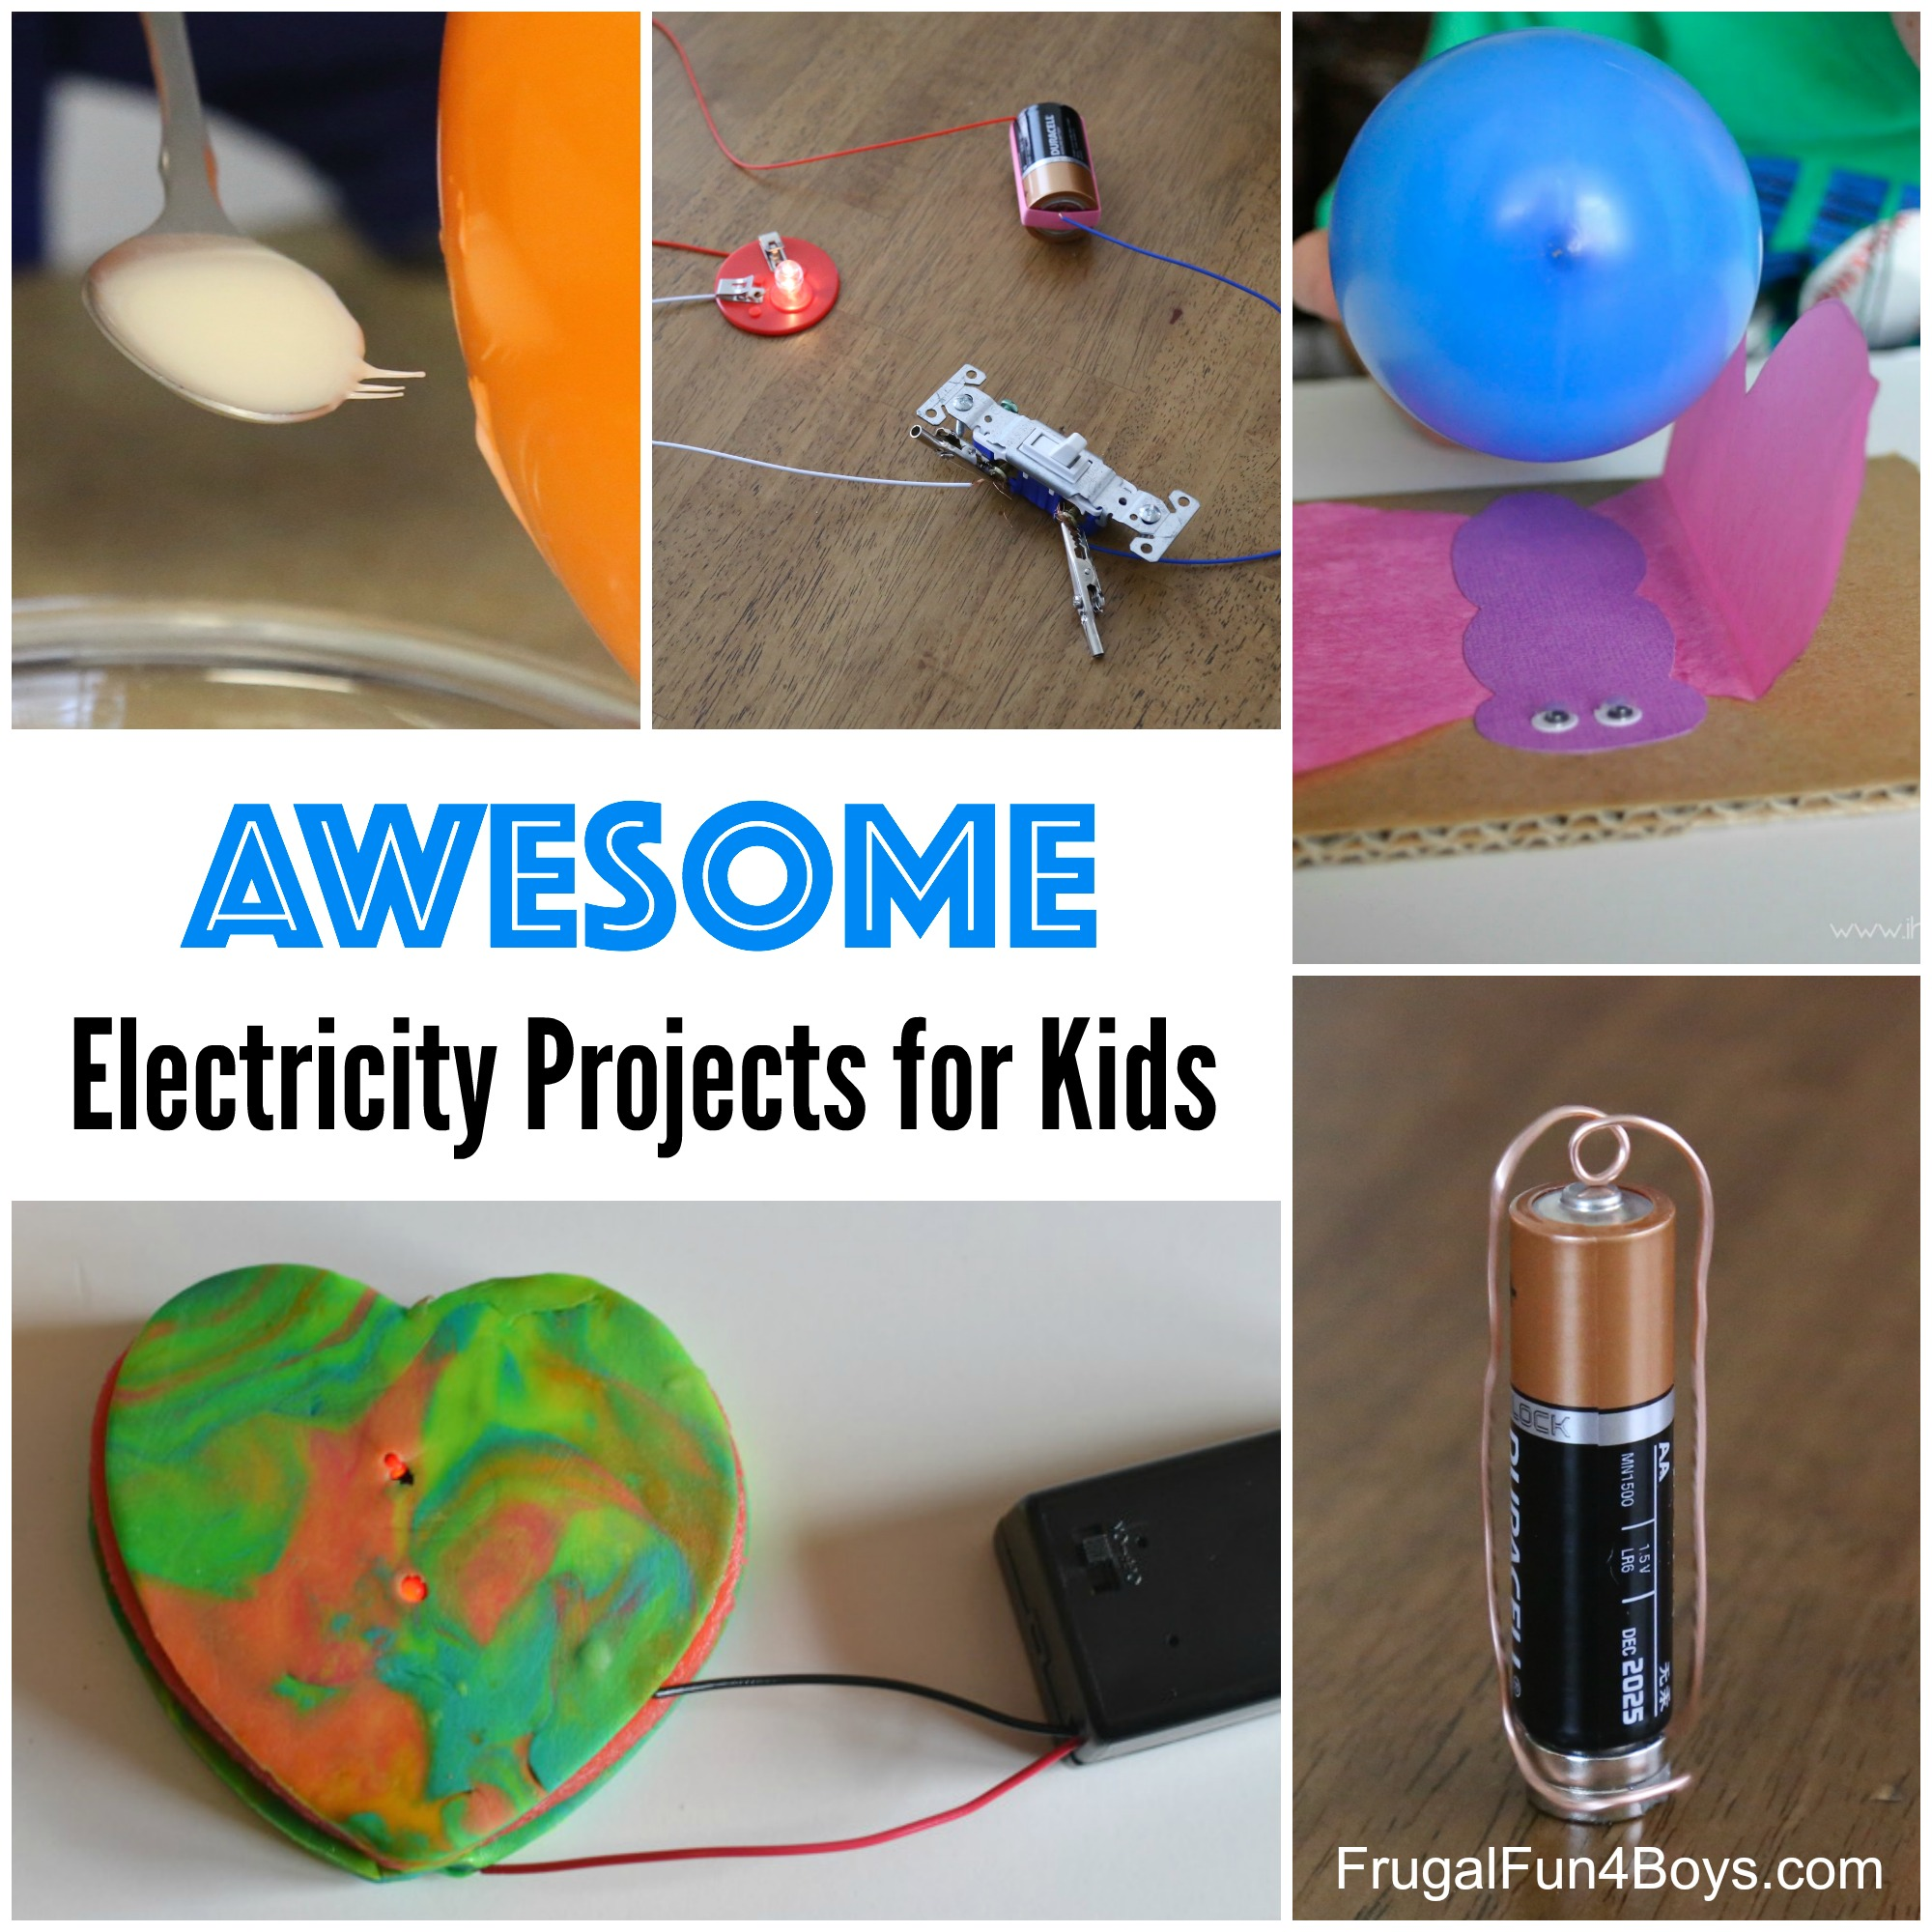 Awesome Electricity Projects for Kids